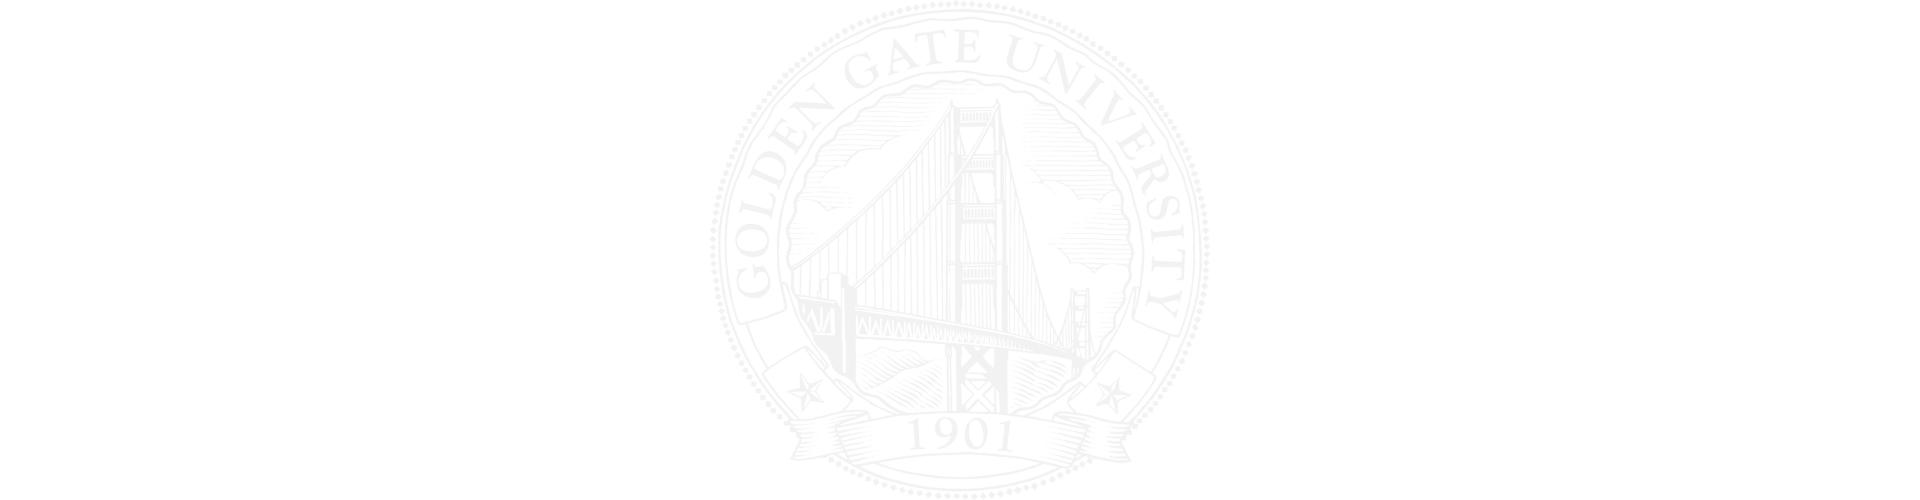 Golden Gate University Seal